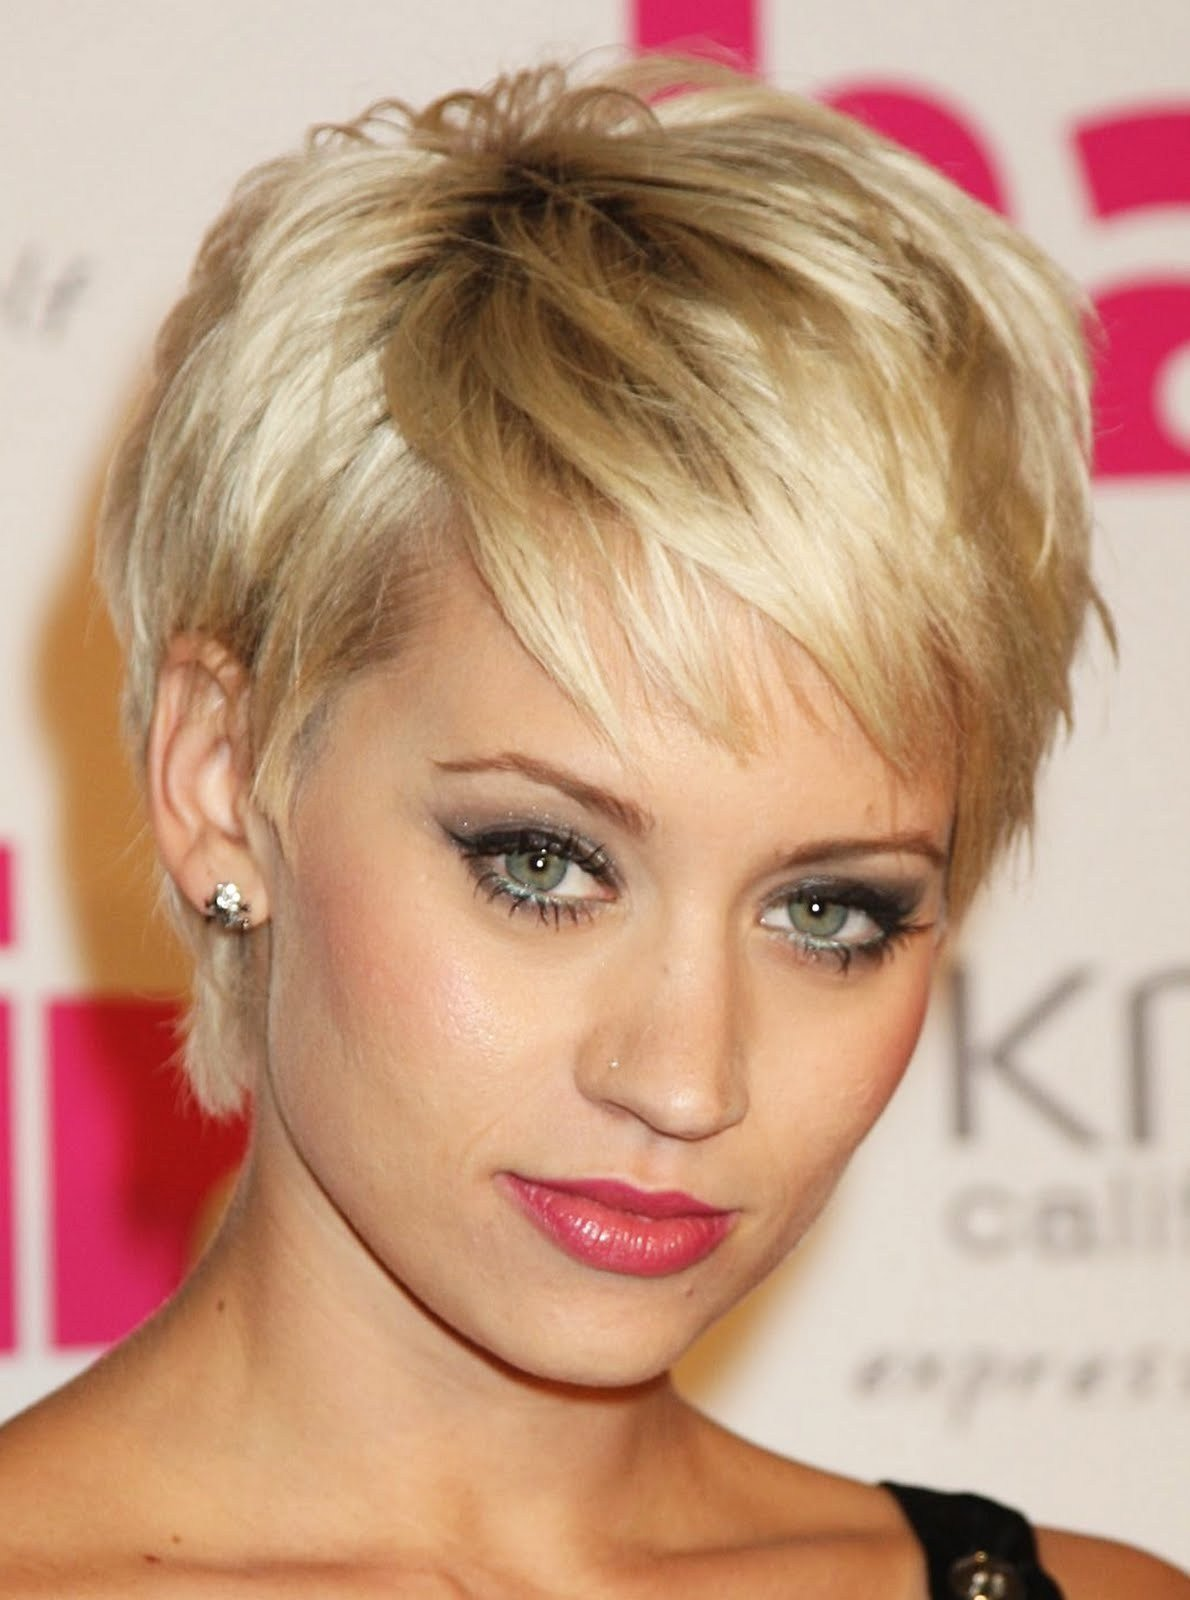 The Best 16 Best Hairstyles For Women Over 50 With Thin Hair And Pictures